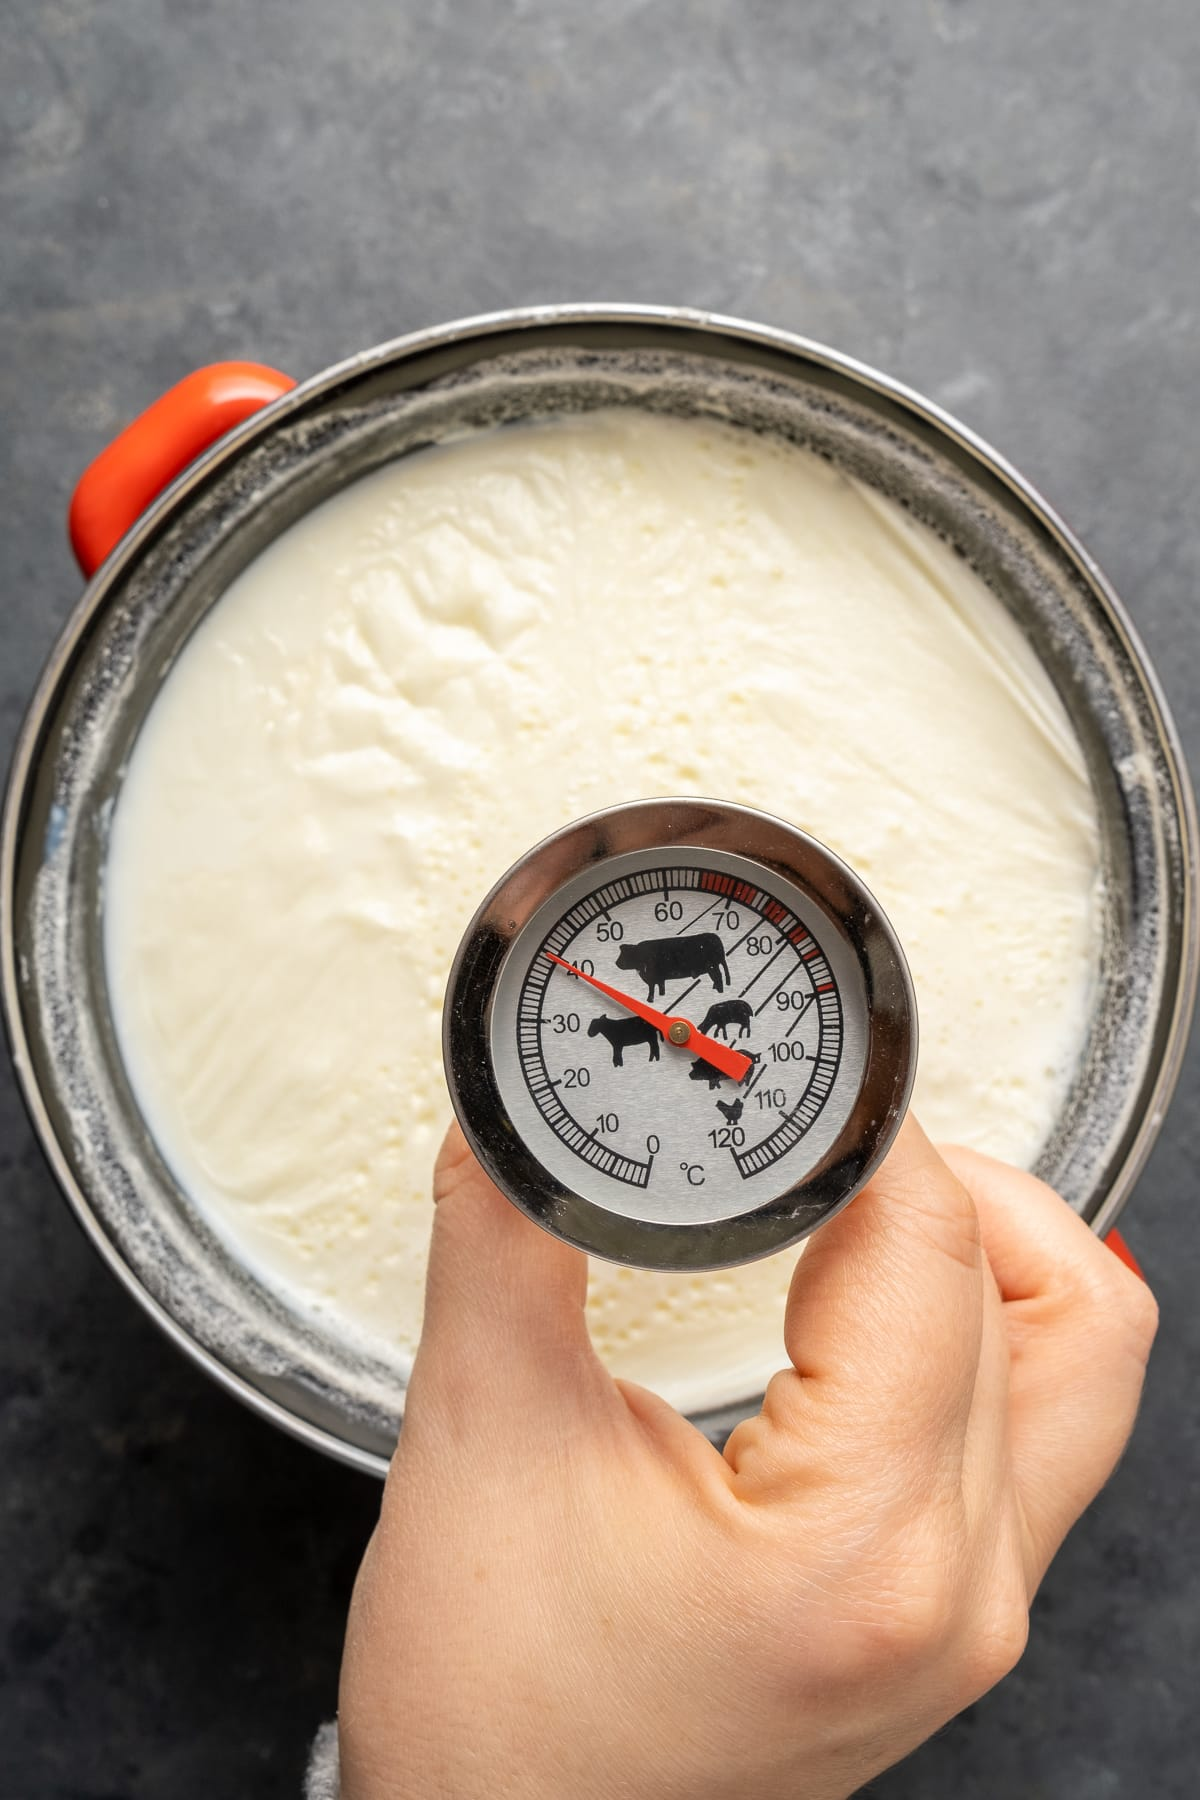 A hand measuring the temperature of milk in a pot with a thermometer.